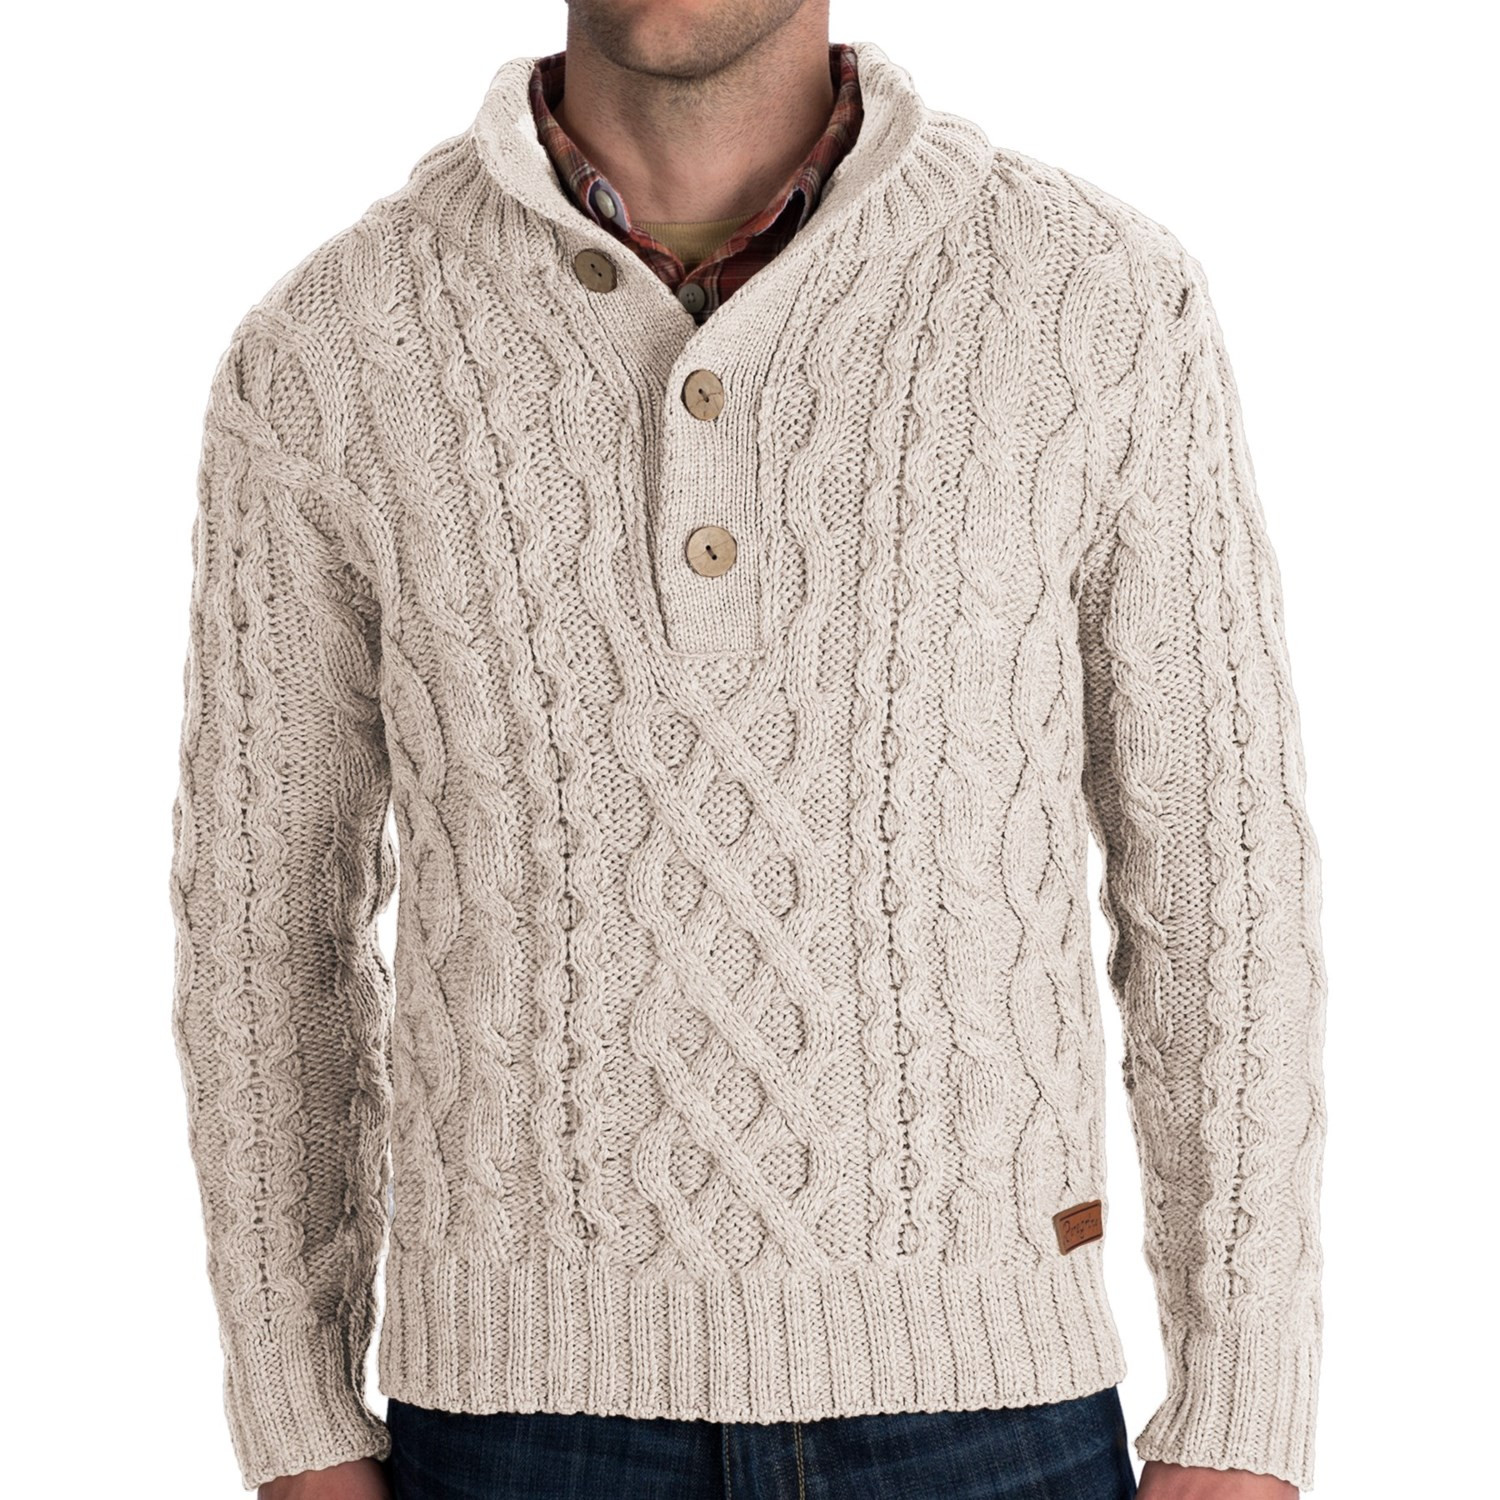 Wool for Sale Awesome Merino Wool Sweater Mens Sale Gray Cardigan Sweater Of Amazing 50 Models Wool for Sale